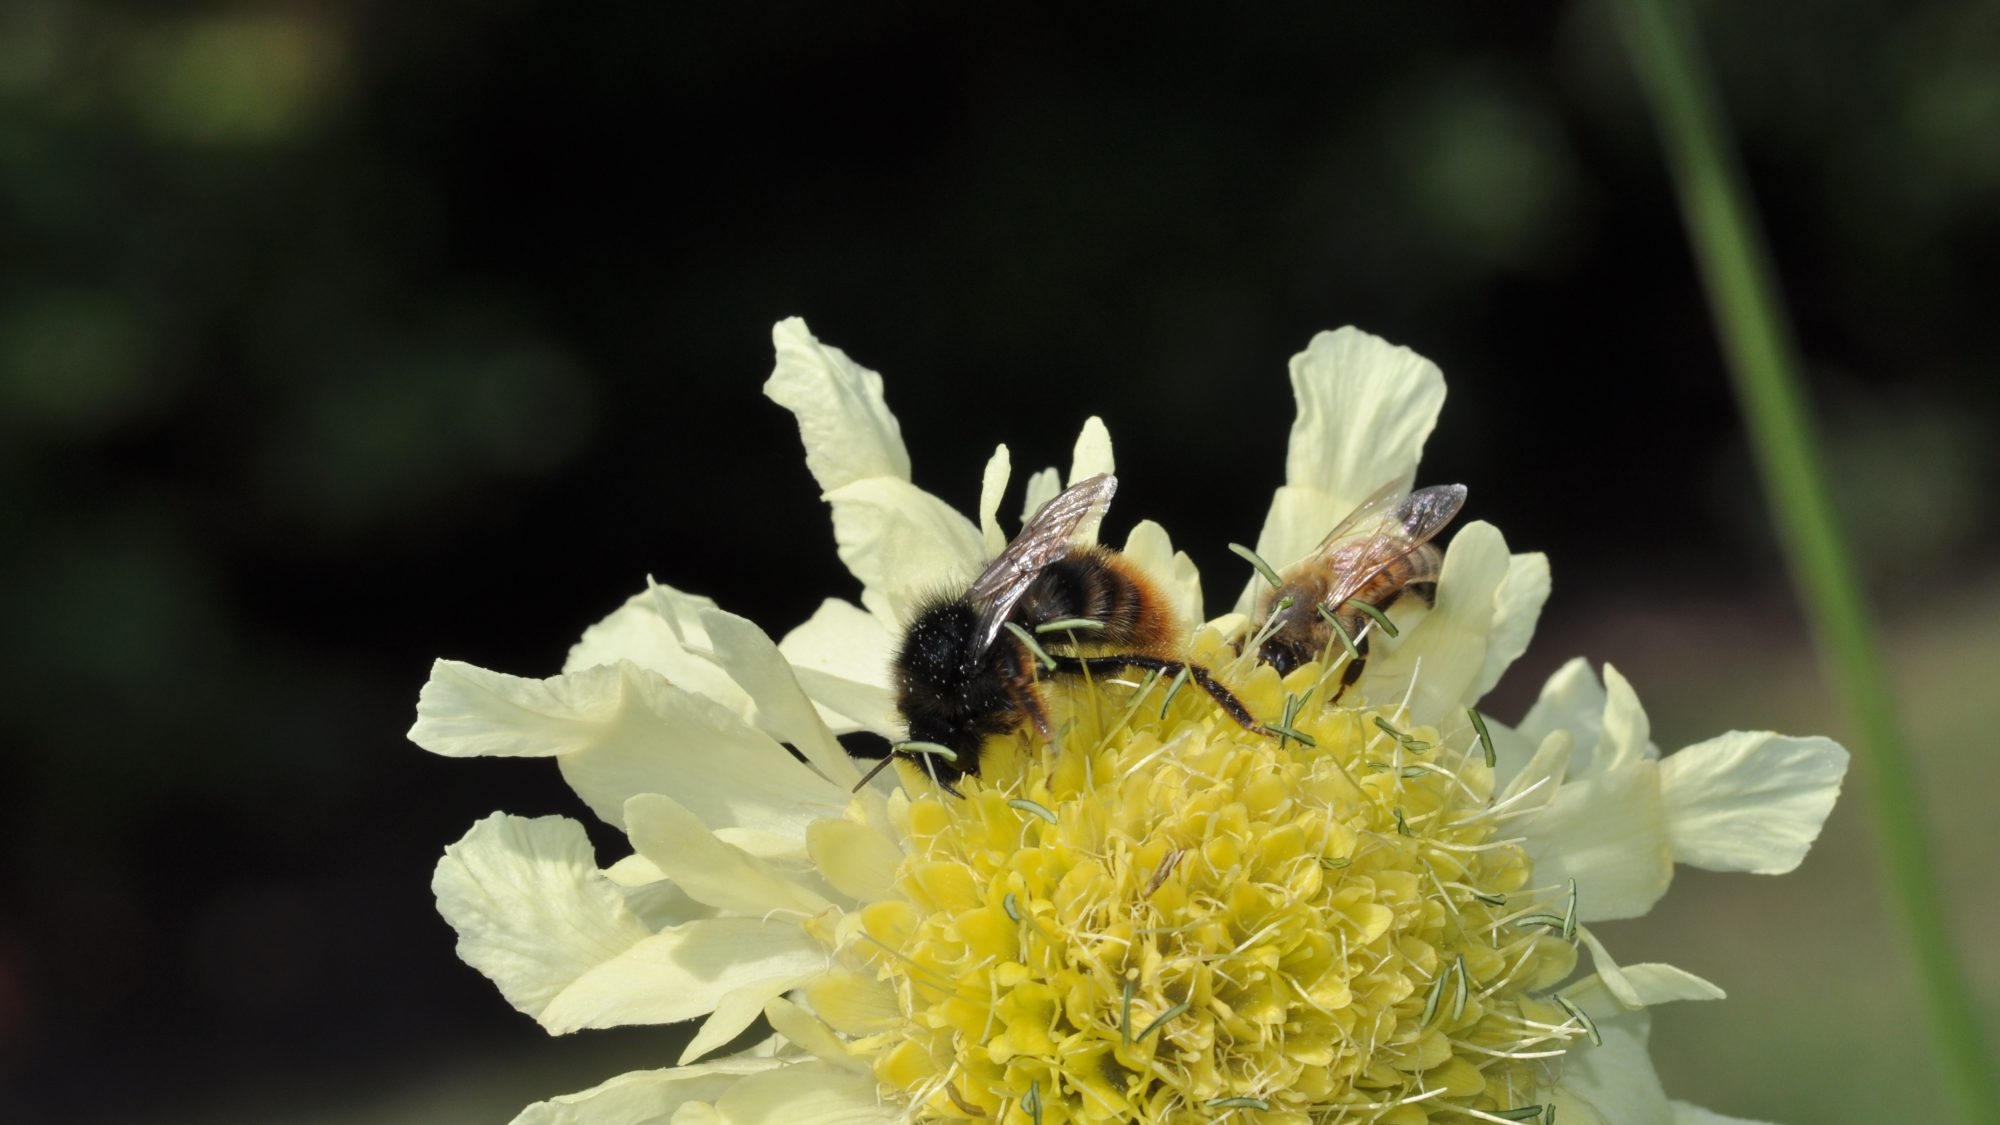 Two bees on a cream flower